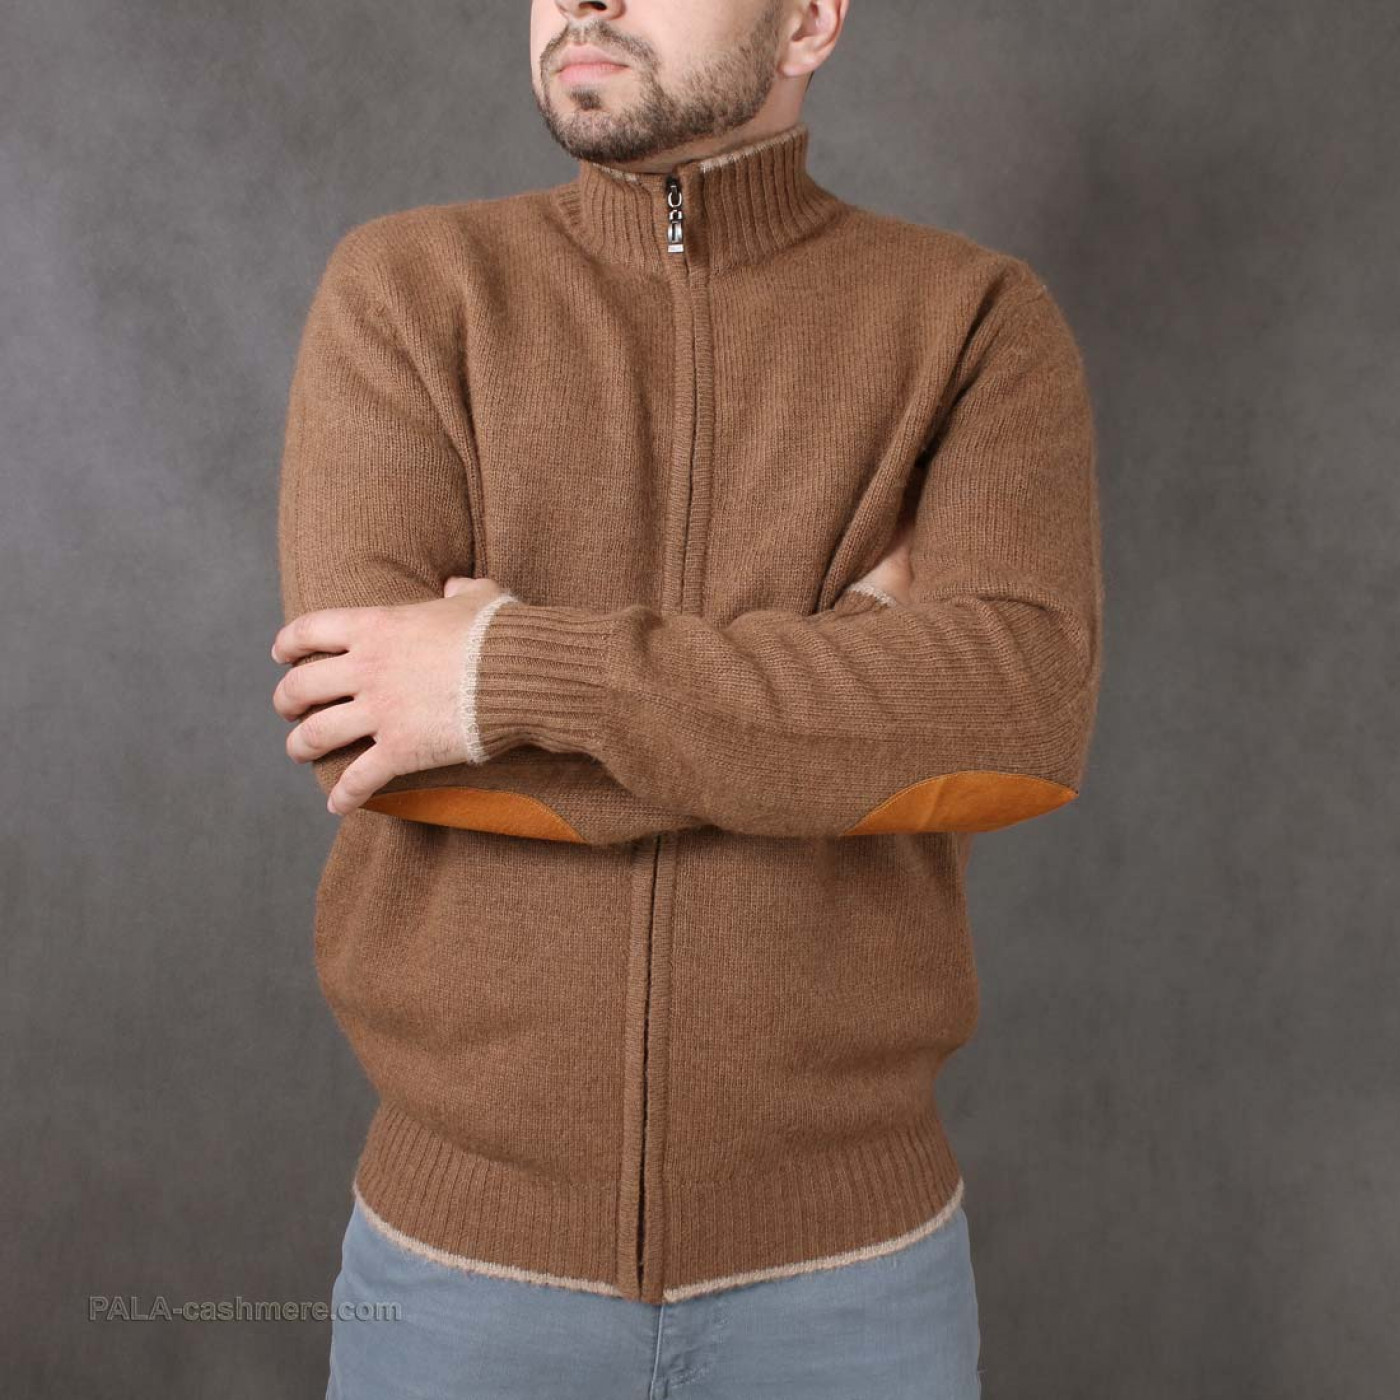 Cardigan male out of camel hair with zipper